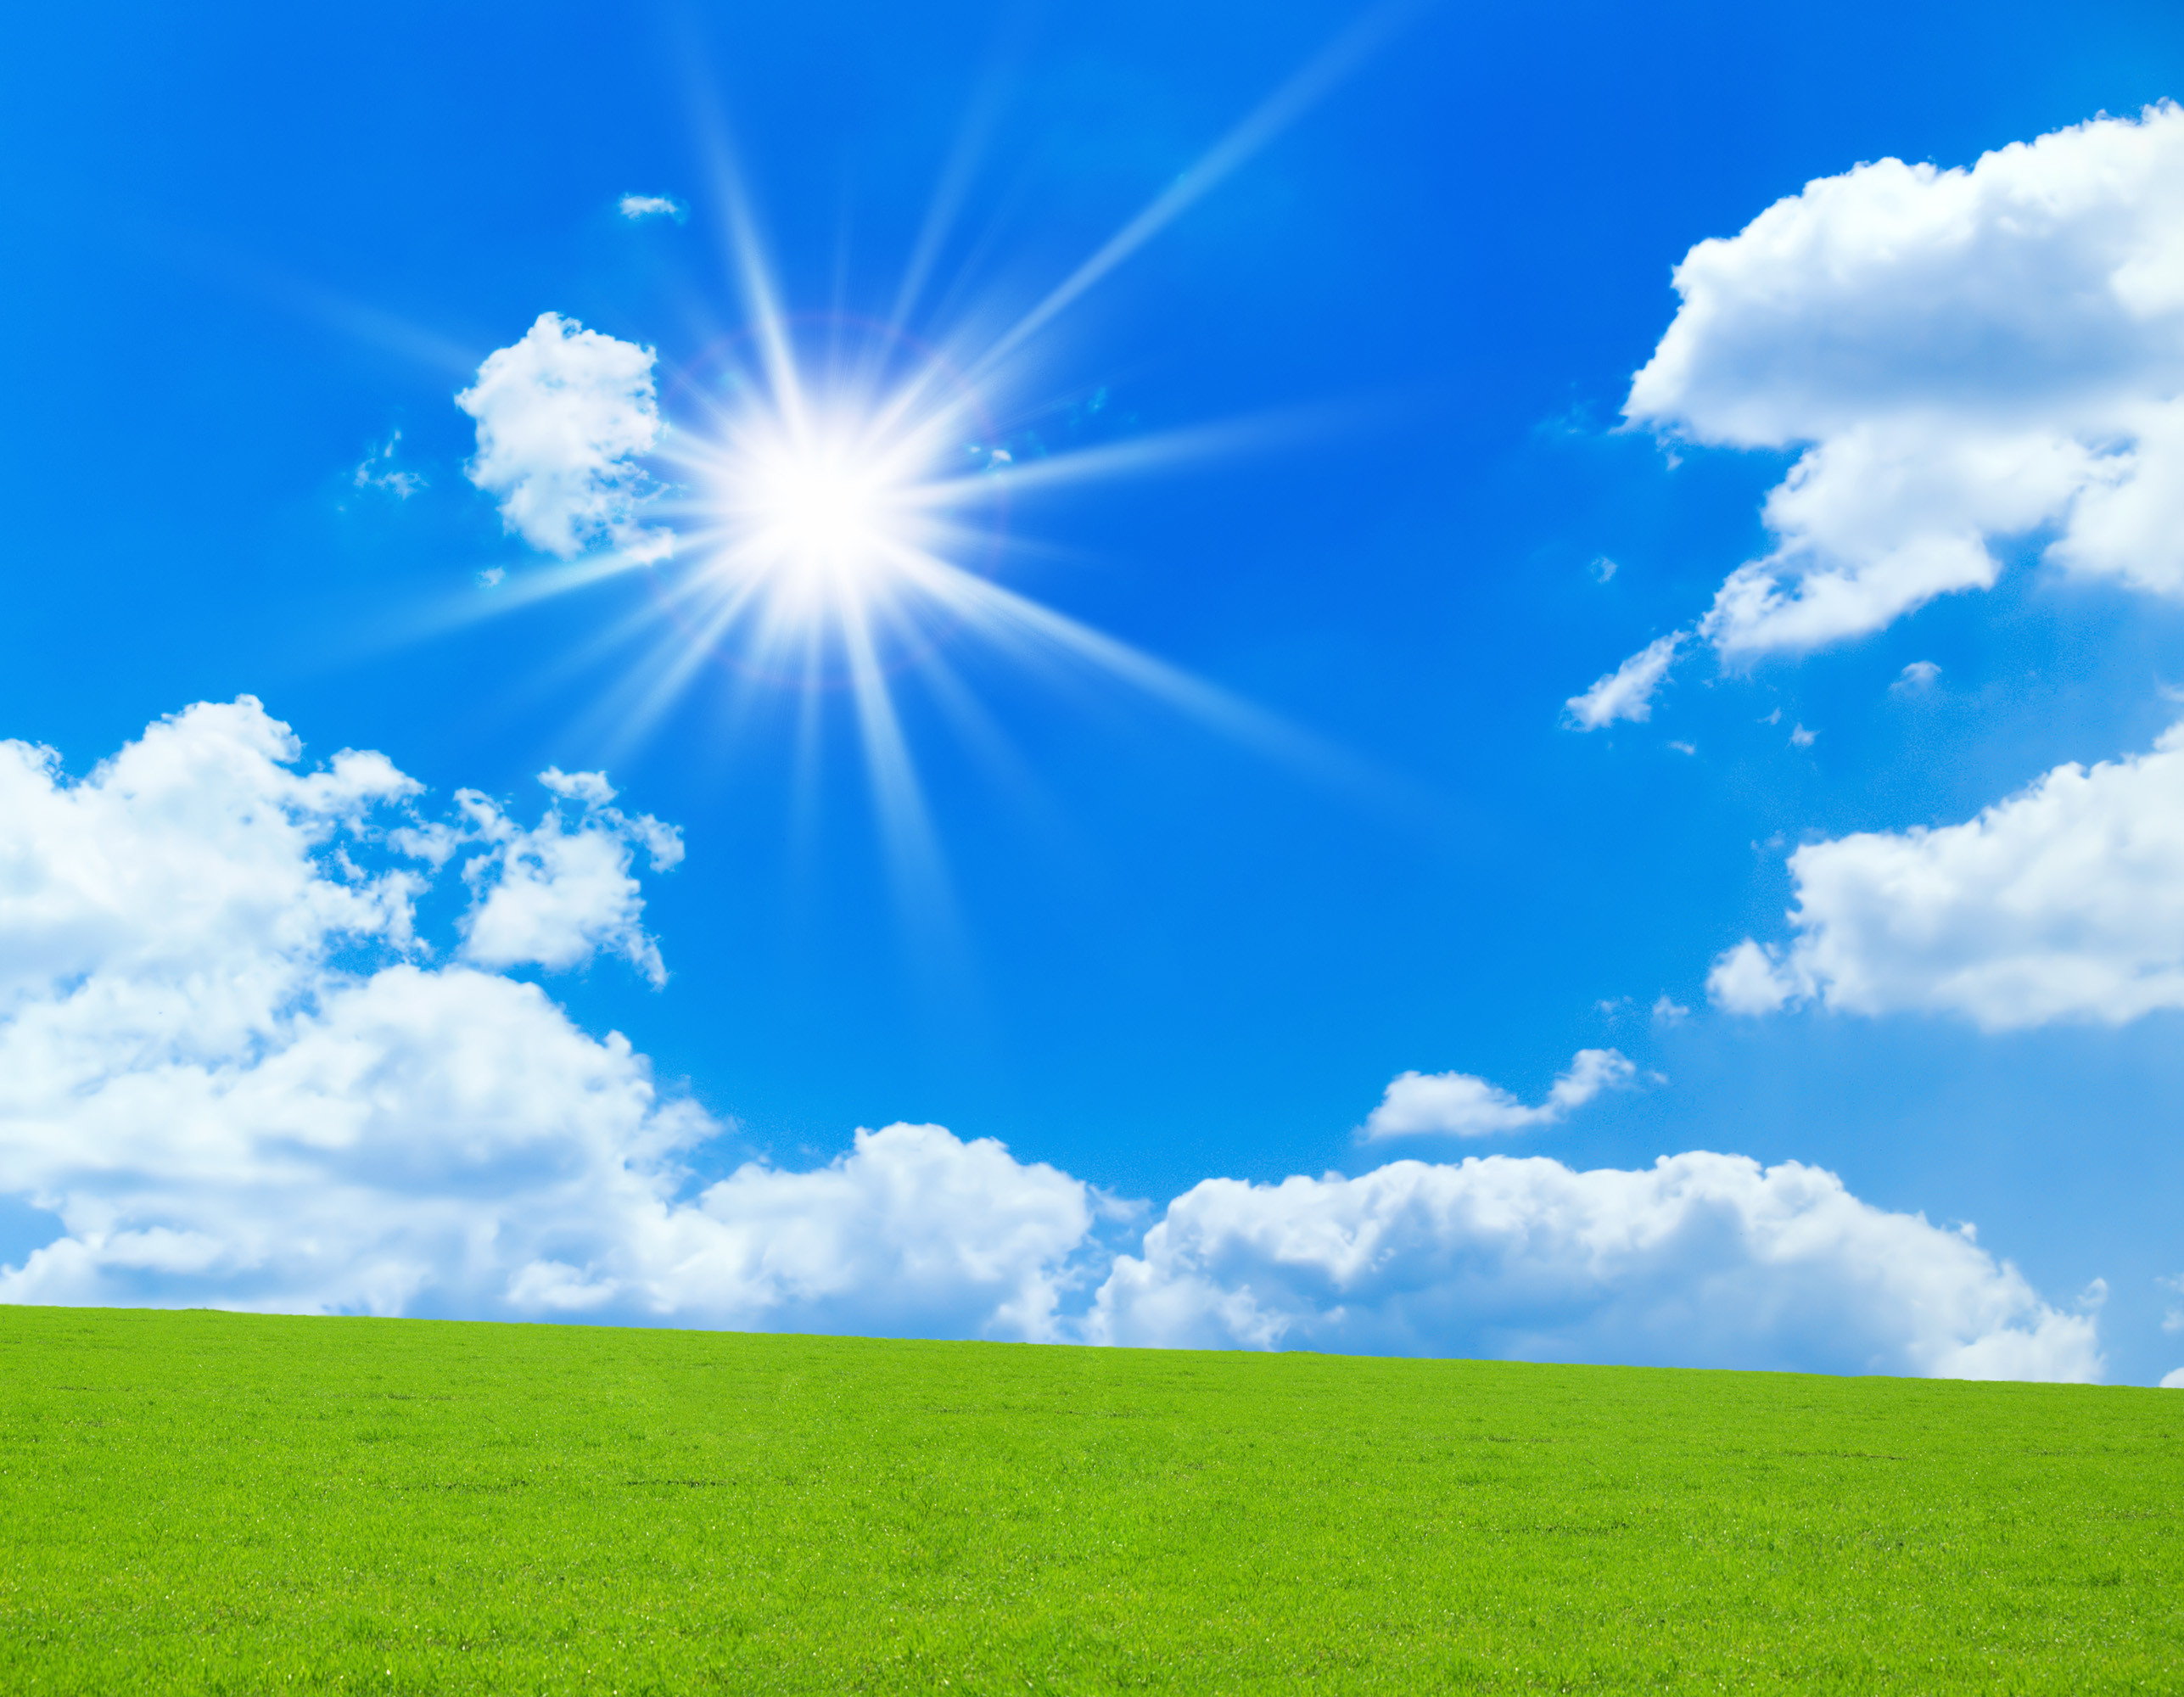 Sunny Day Wallpaper (59+ images)